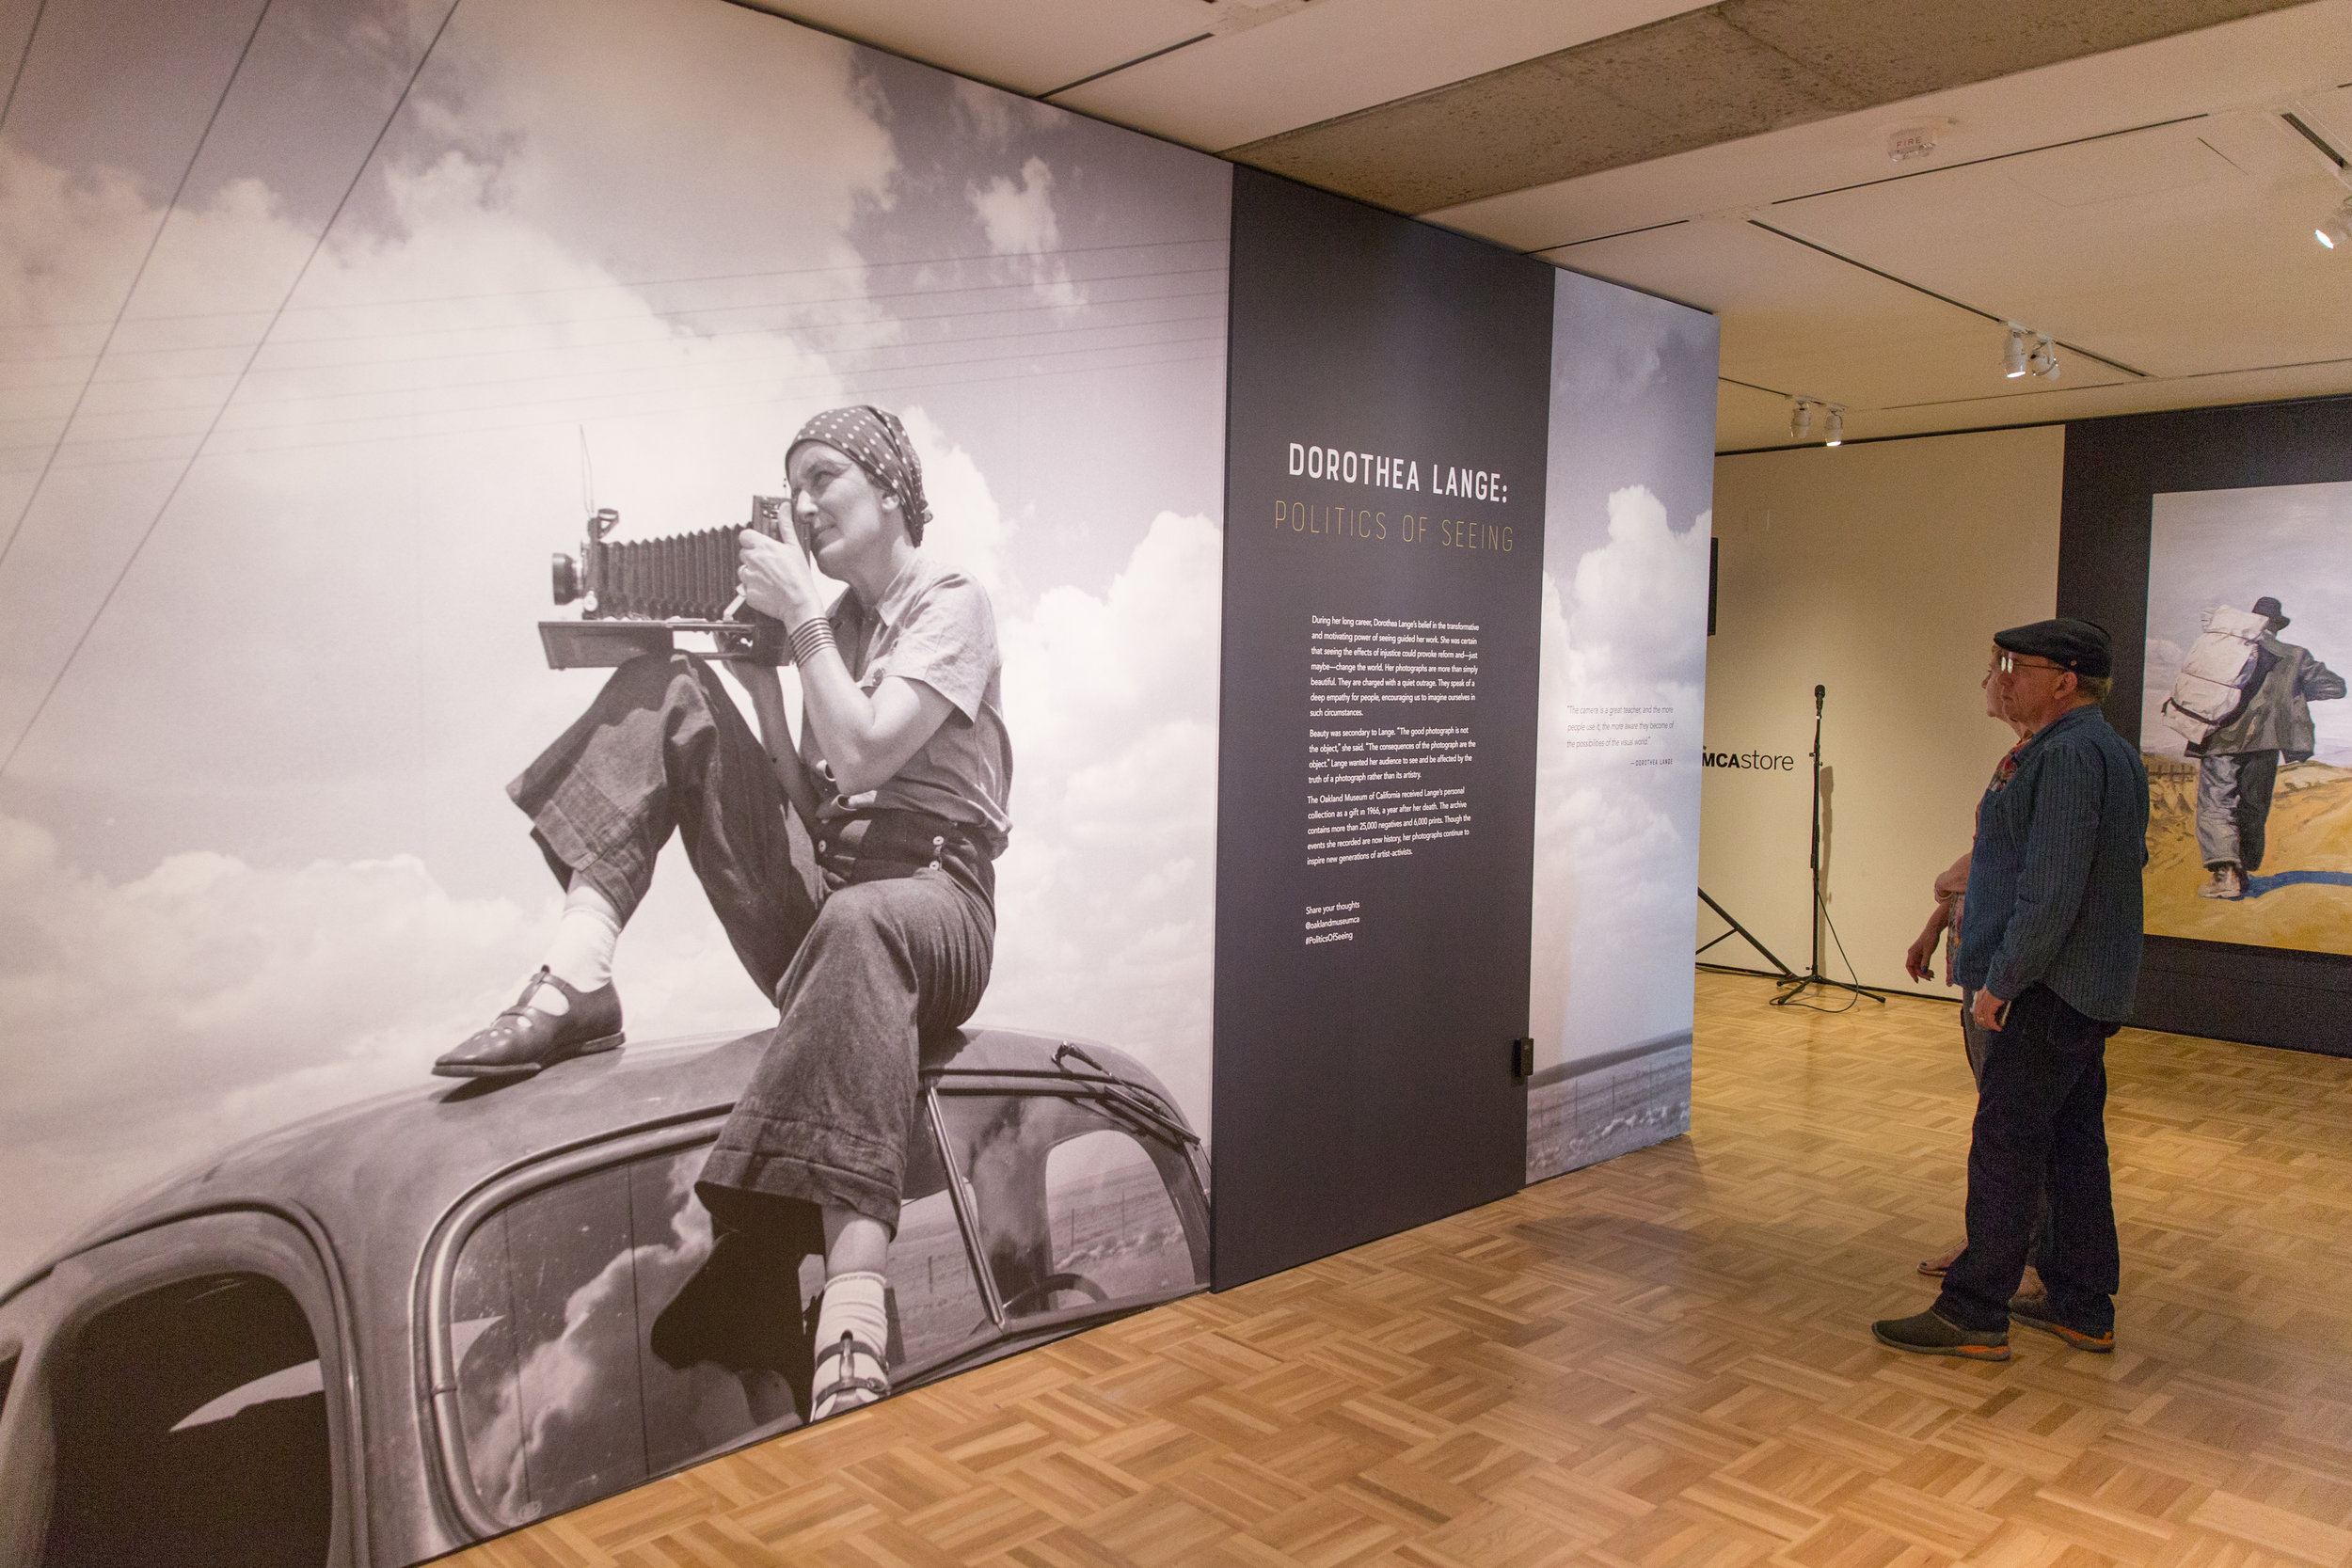 Installation view of  Dorothea Lange: Politics of Seeing  , 2017.   Courtesy of Oakland Museum of California. Photo: Odell Hussey Photography.